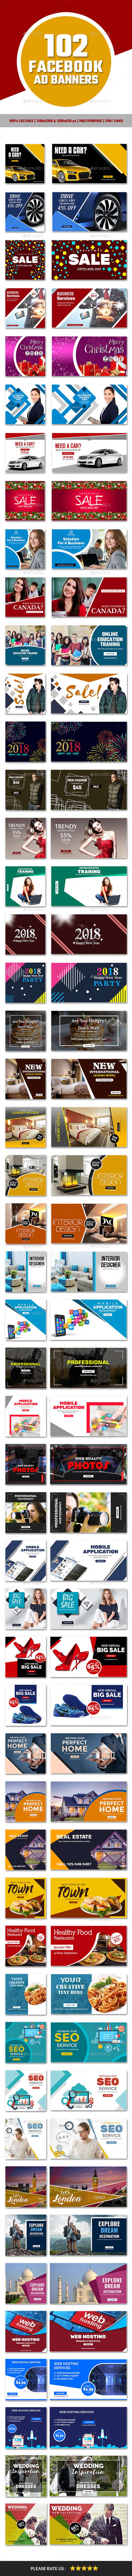 Facebook Ad Banners - 102 Designs - Social Media Web Elements